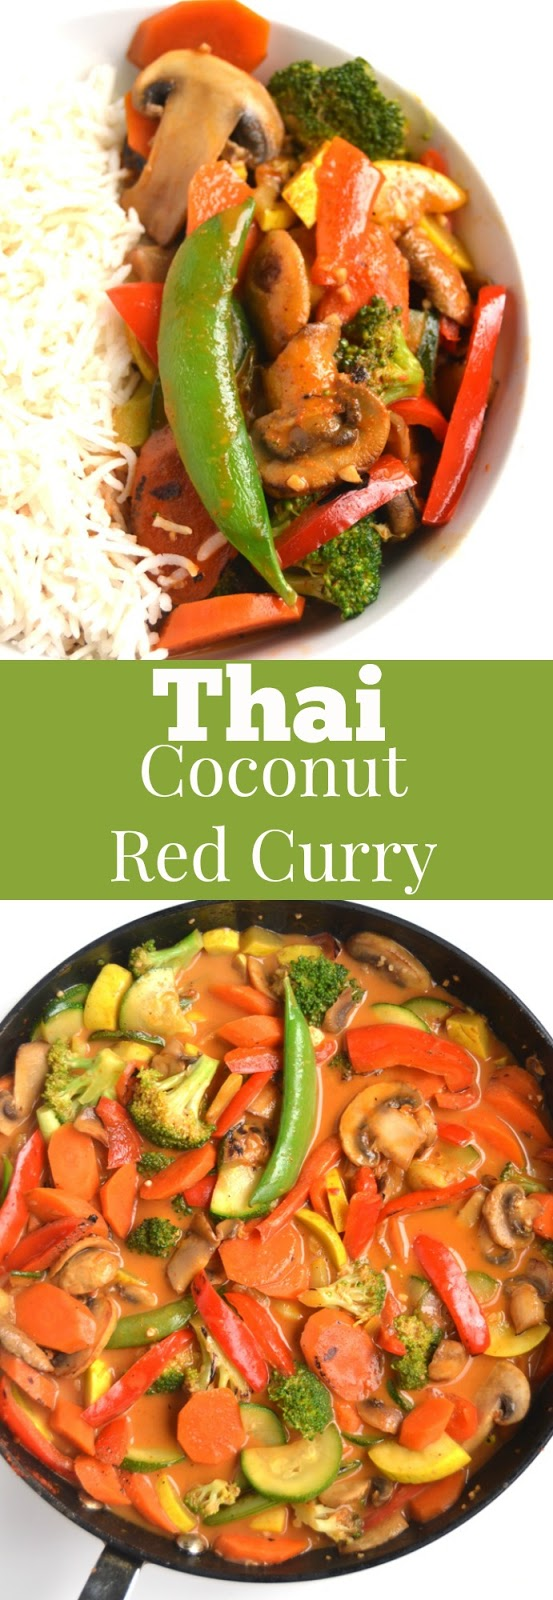 Thai Coconut Red Curry is healthier and tastier than your favorite takeout dish and is ready in just 15 minutes! Loaded with nutritious vegetables and served with brown rice. www.nutritionistreviews.com